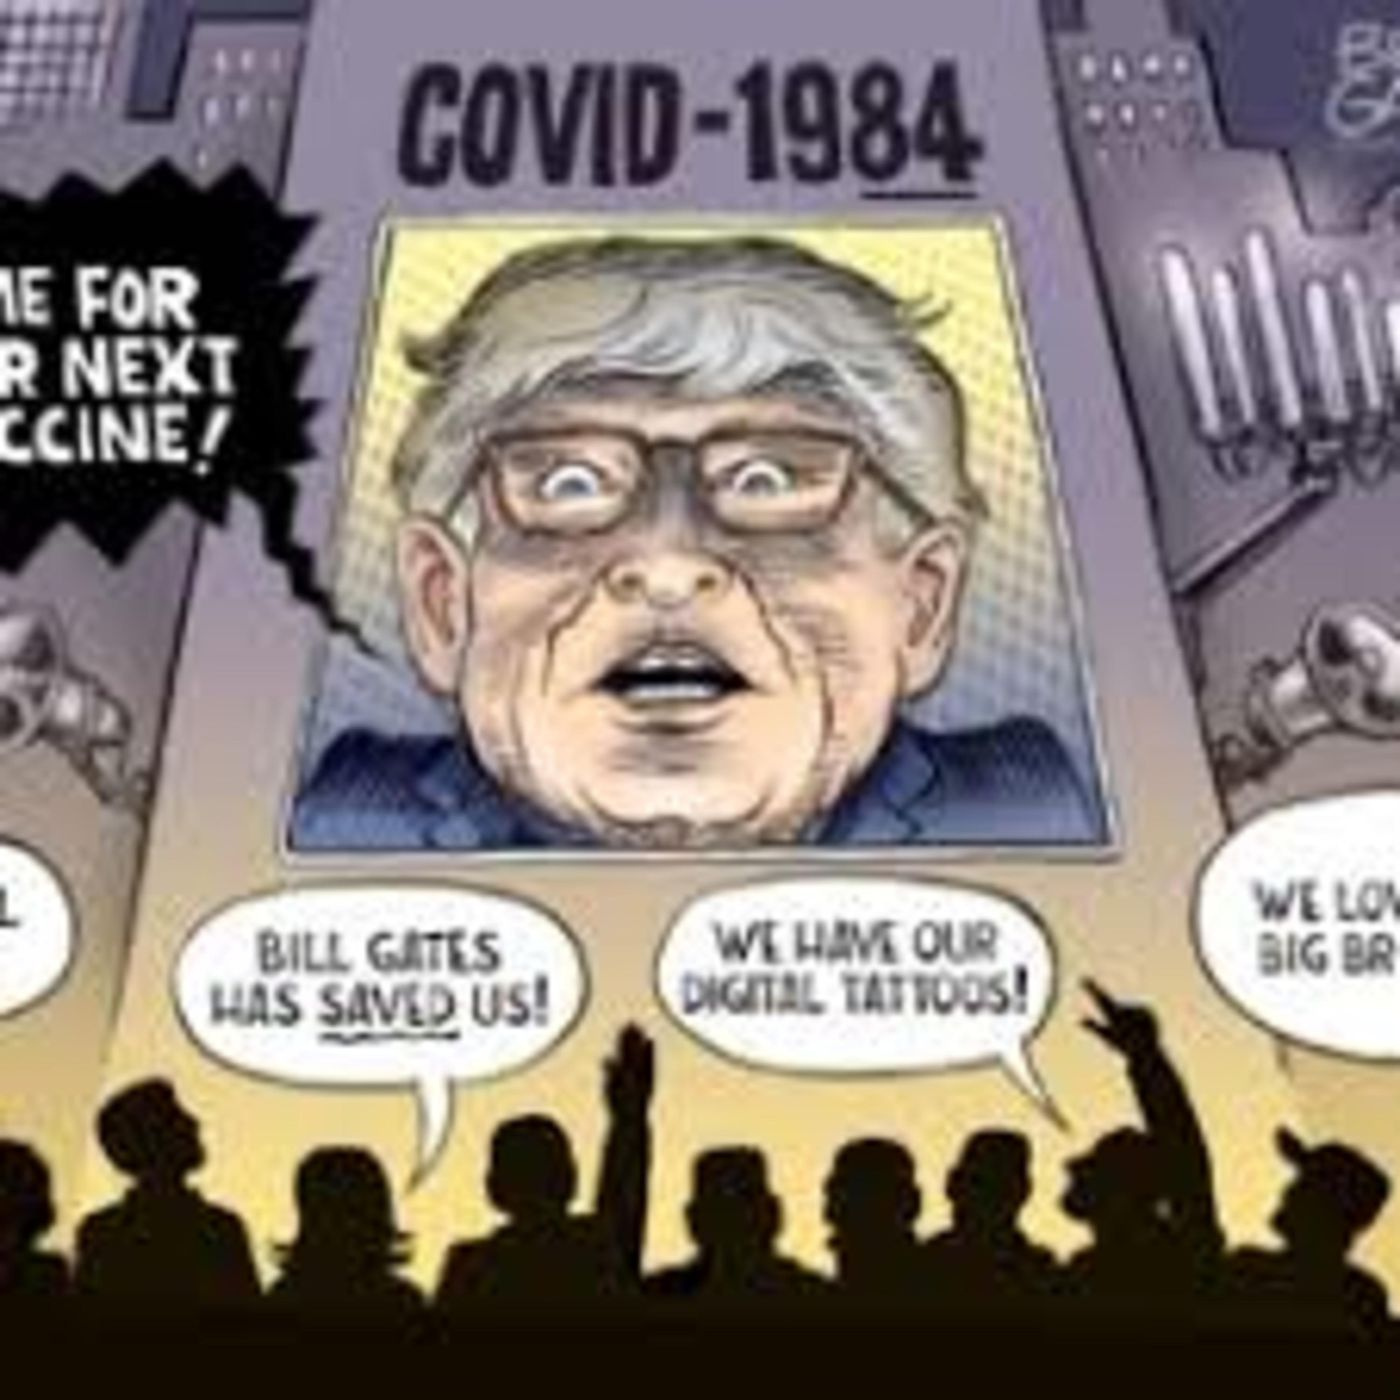 Charles Moscowitz and James Perloff: Covid 19 red pilled